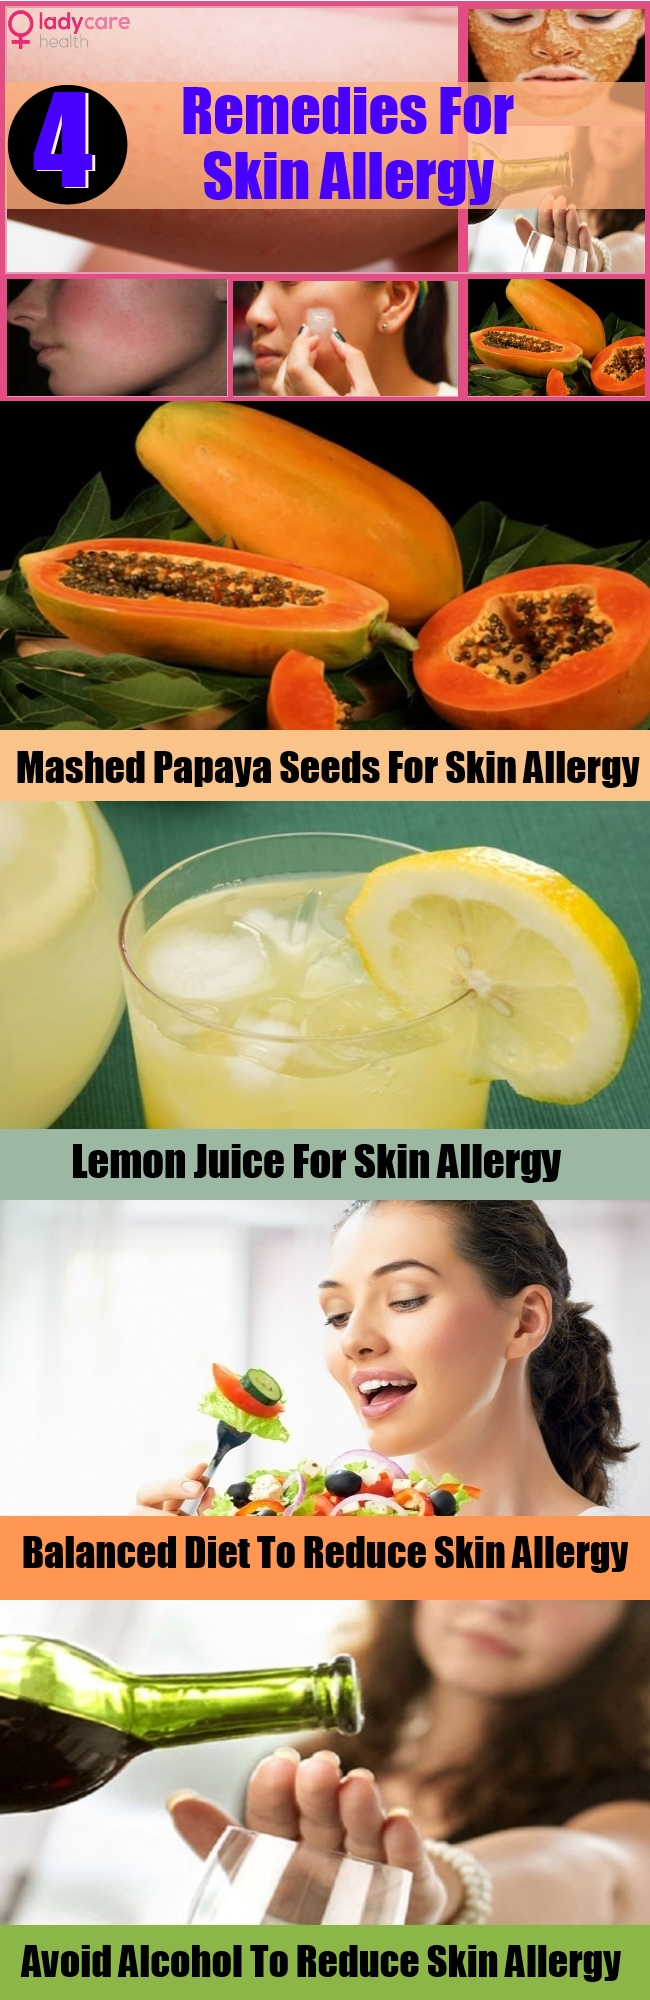 Remedies For Skin Allergy